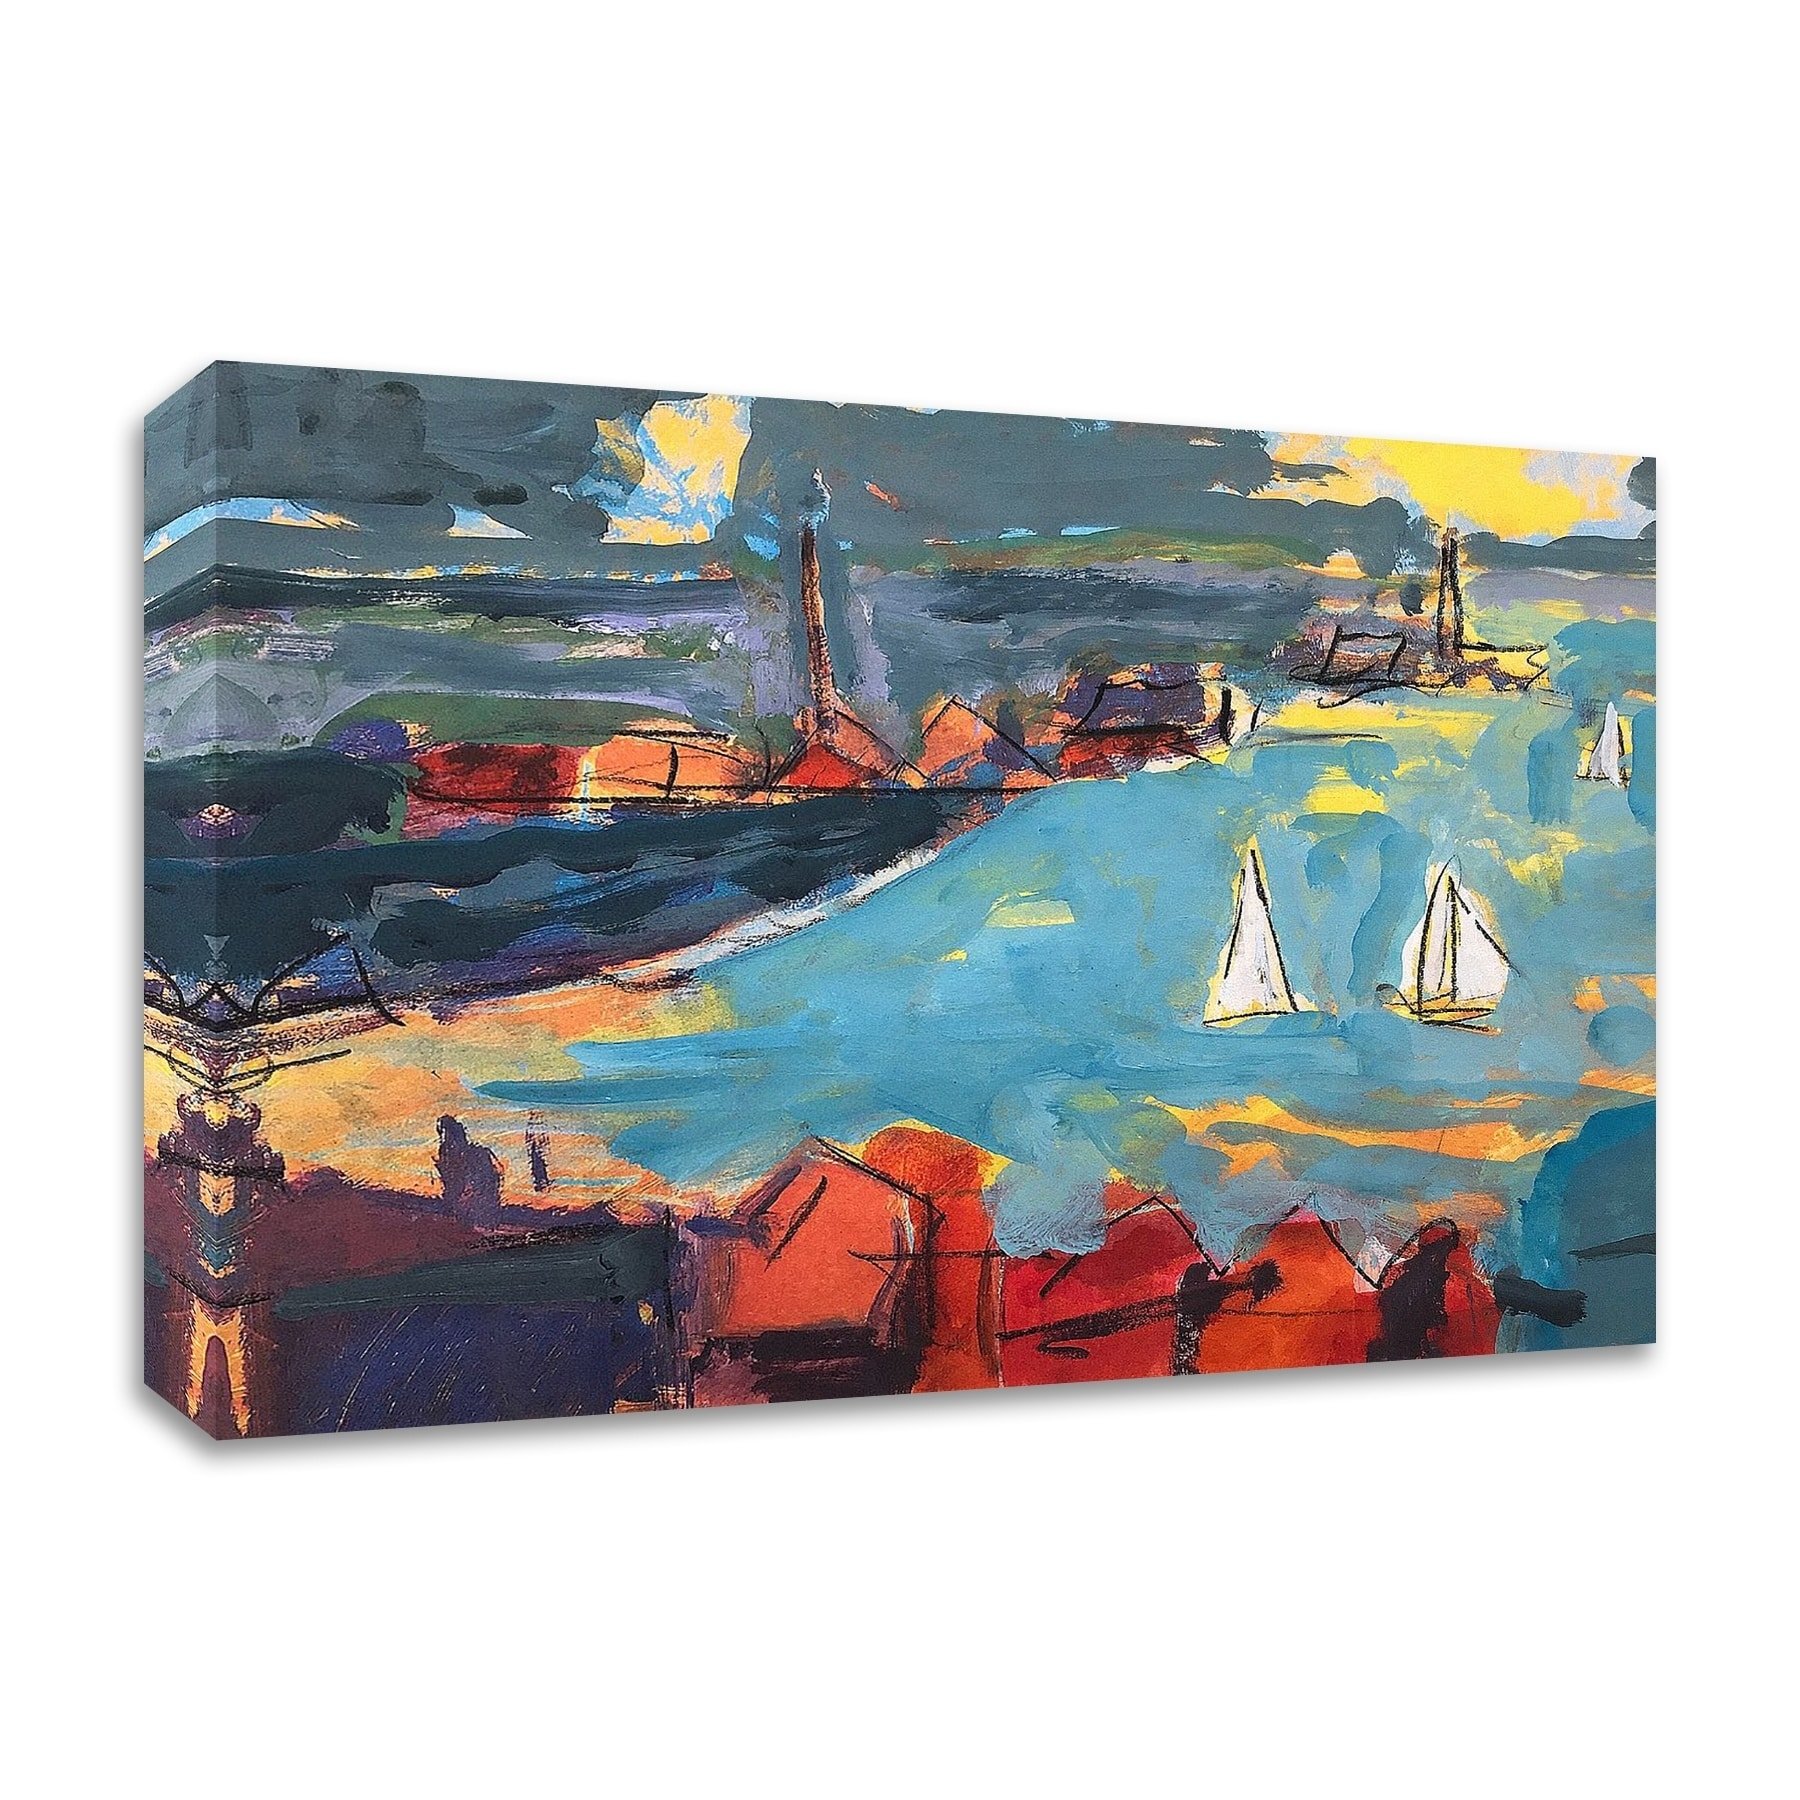 Homeward Bound By Per Anders Print On Canvas 24 X 18 Ready To Hang Overstock 29161773